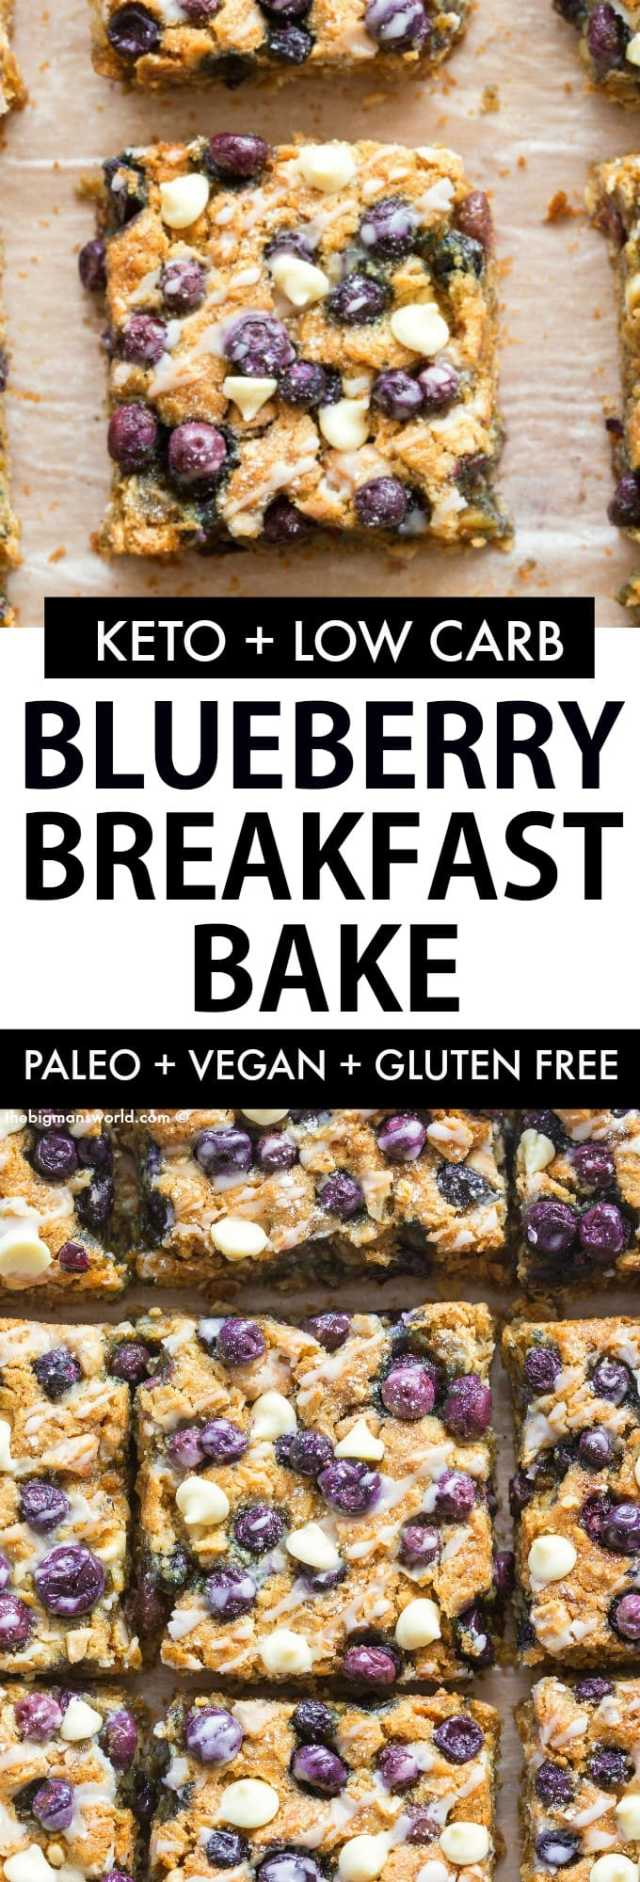 Blueberry Baked Oatmeal with a paleo and keto option- Using rolled oats, banana and peanut butter!